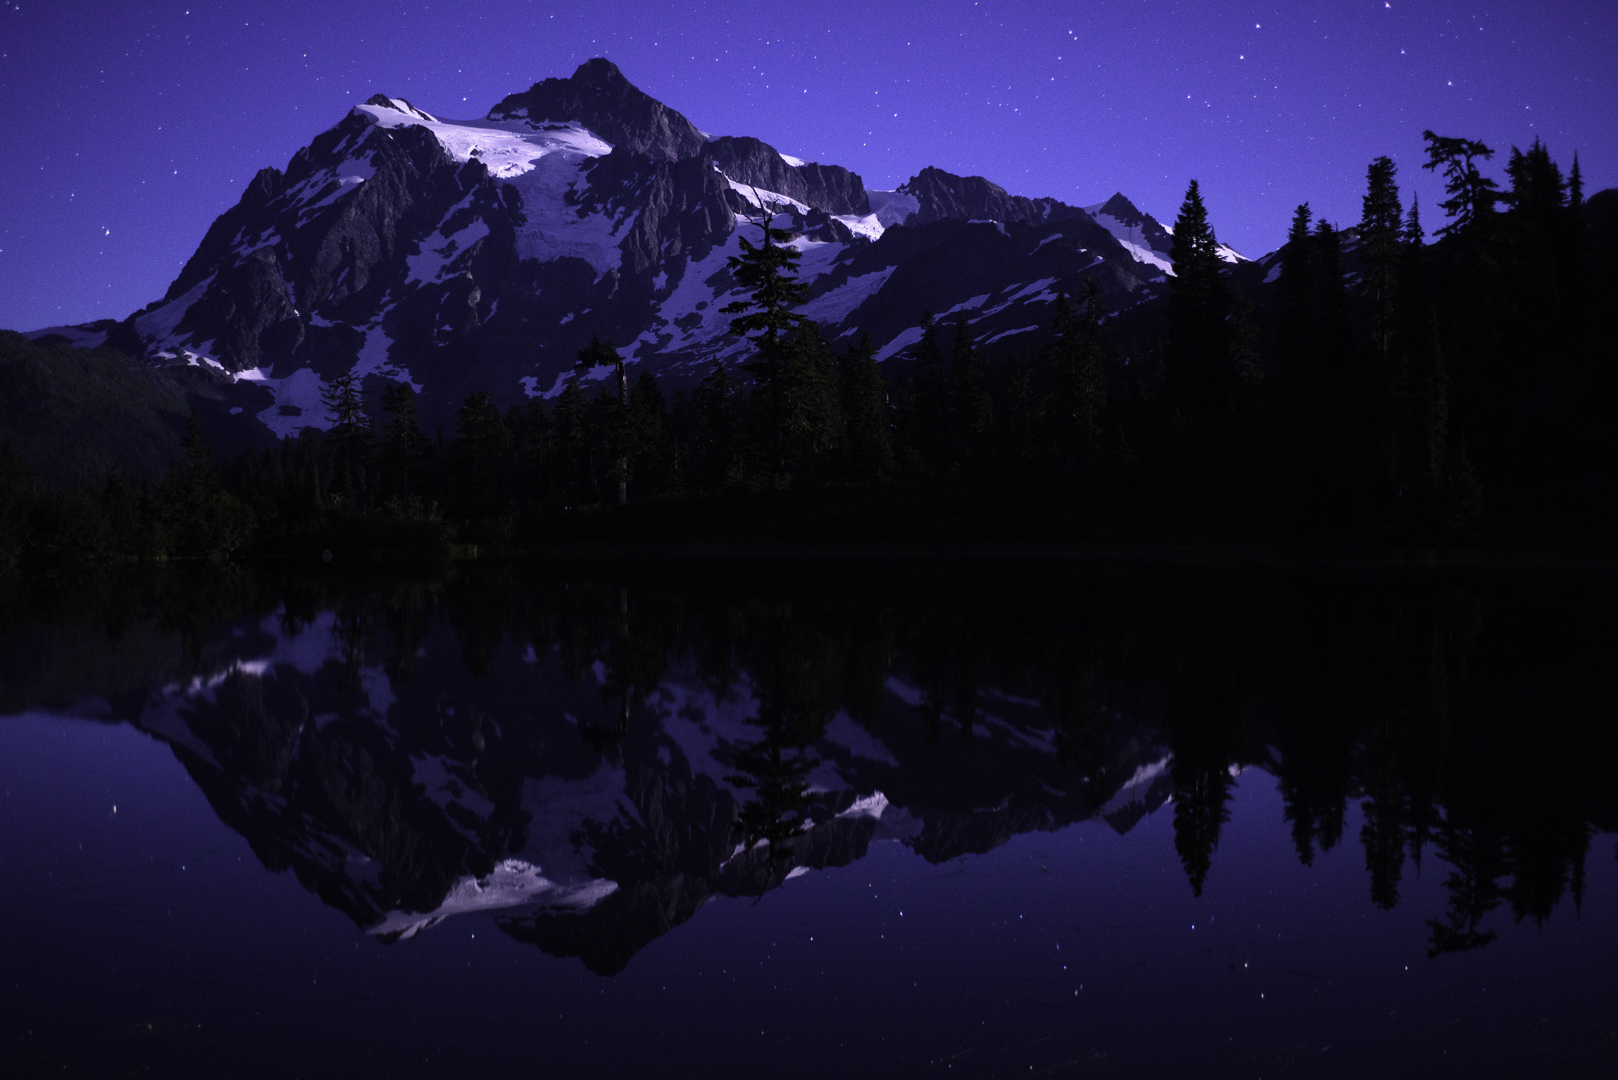 Mount Shuksan in North Cascades National Park sits reflected under a starry summer sky. © 2016 Chris Nicholson.